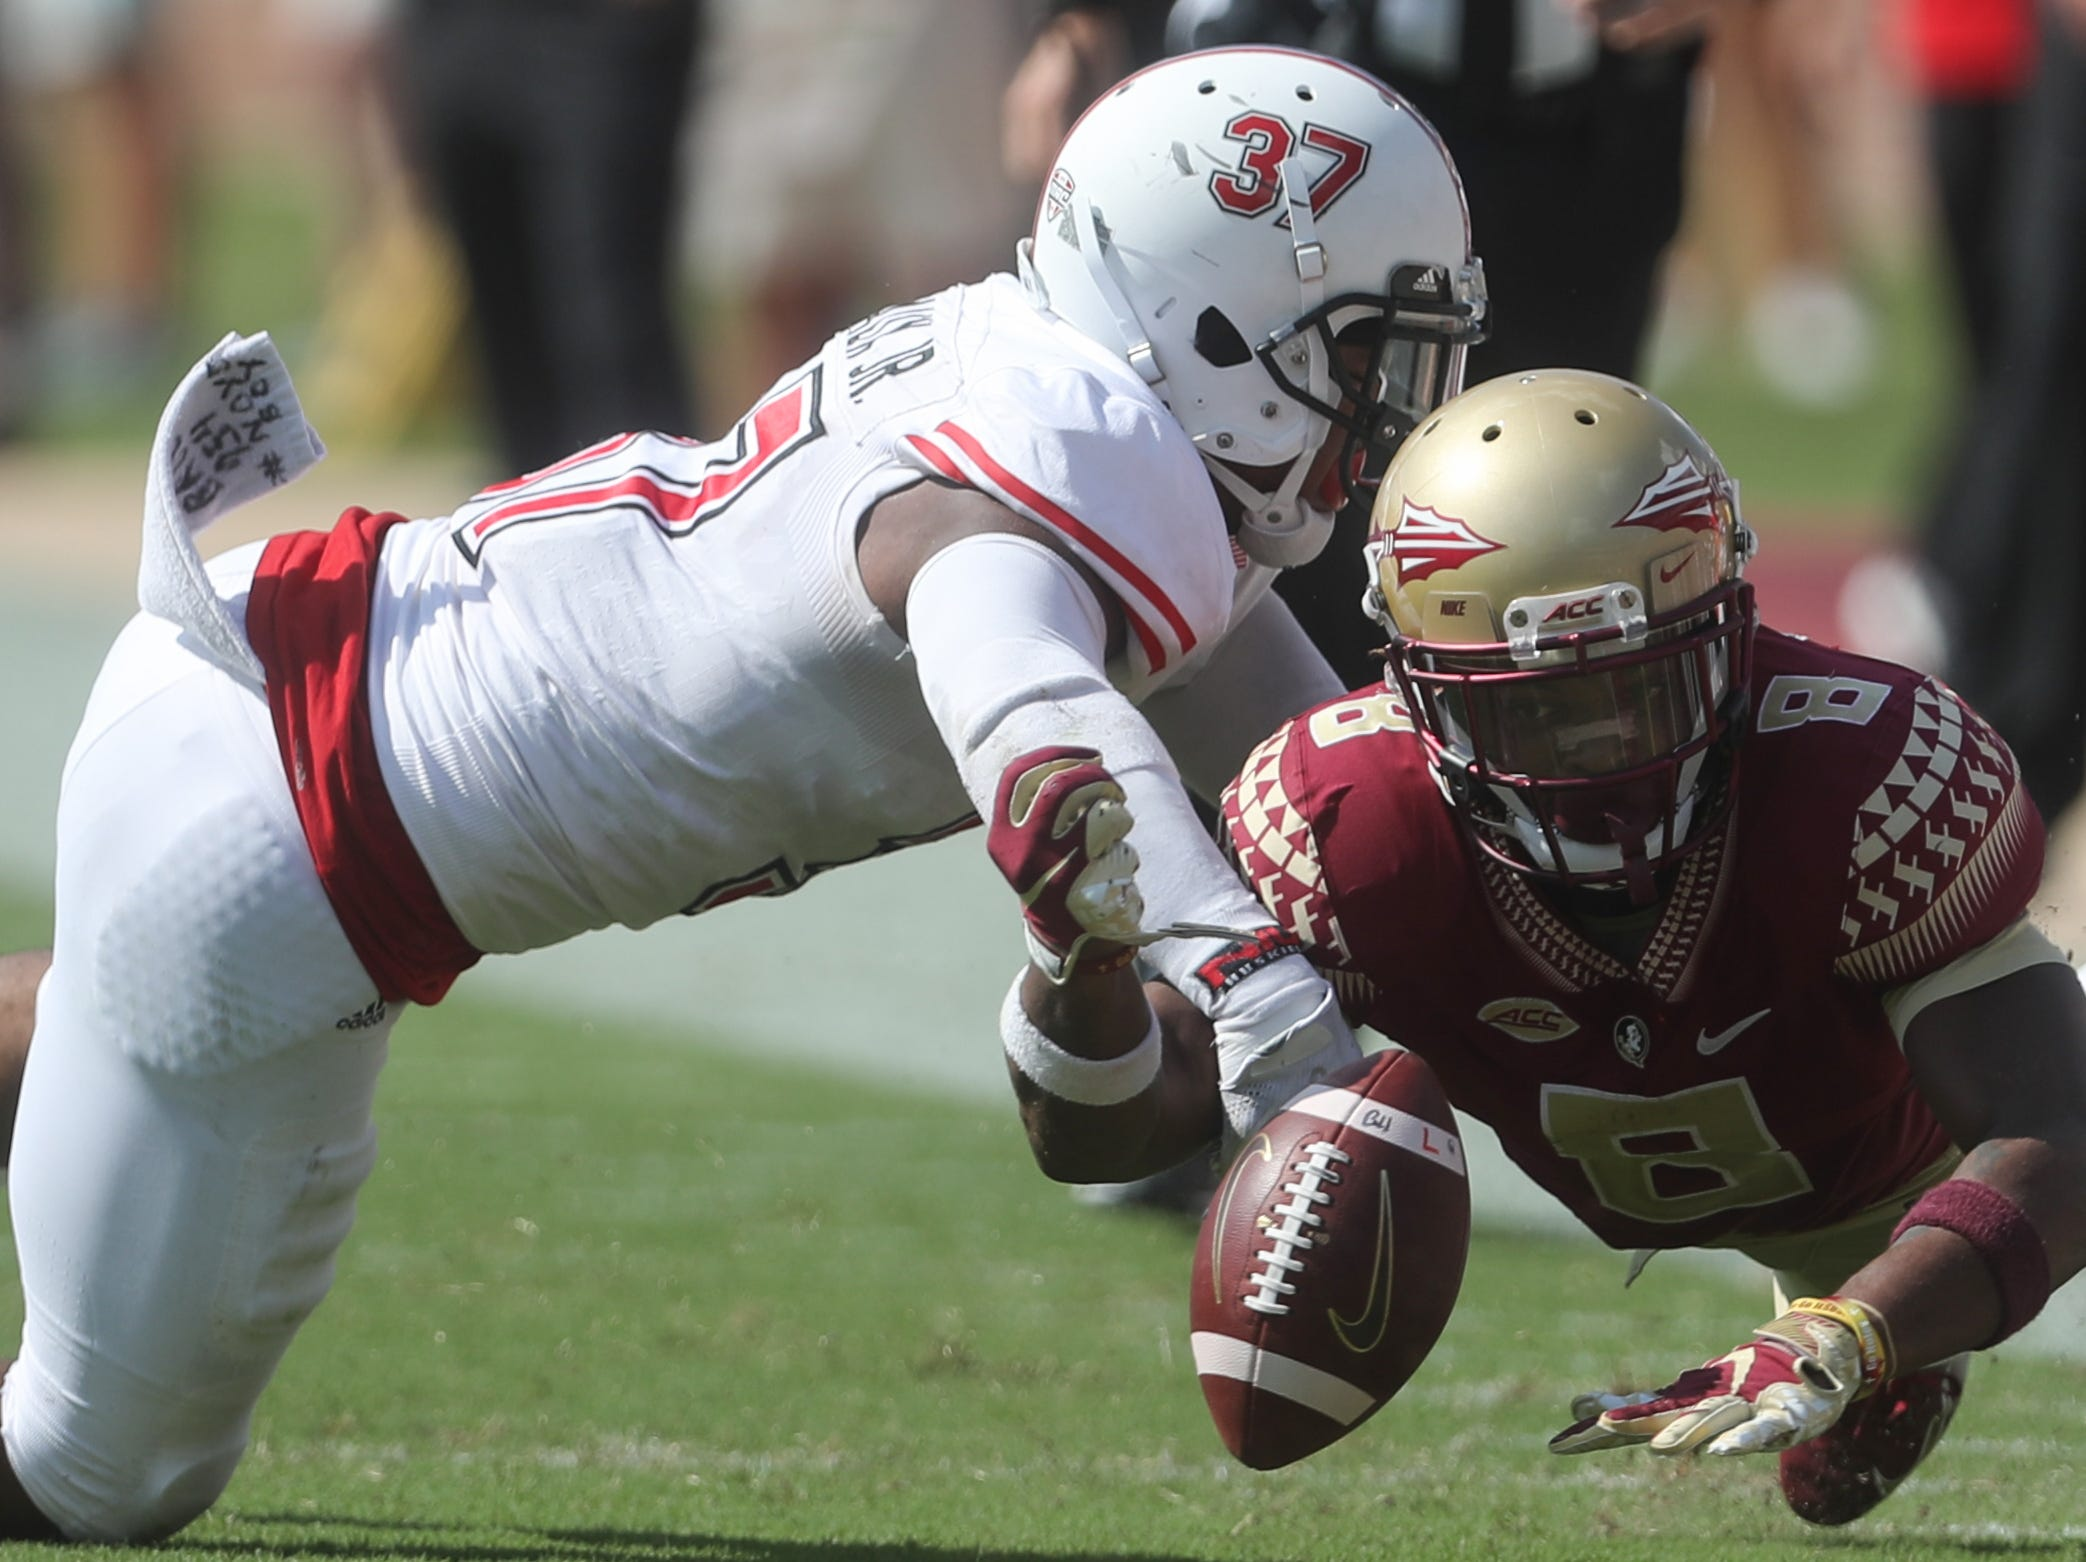 Florida State Seminoles wide receiver Nyqwan Murray (8) loses the ball as Northern Illinois Huskies linebacker Lance Deveaux Jr. (37) tackles him during a game between the Florida State University Seminoles and the Northern Illinois University Huskies at Doak S. Campbell Stadium in Tallahassee, Fla. Saturday, September 22, 2018.